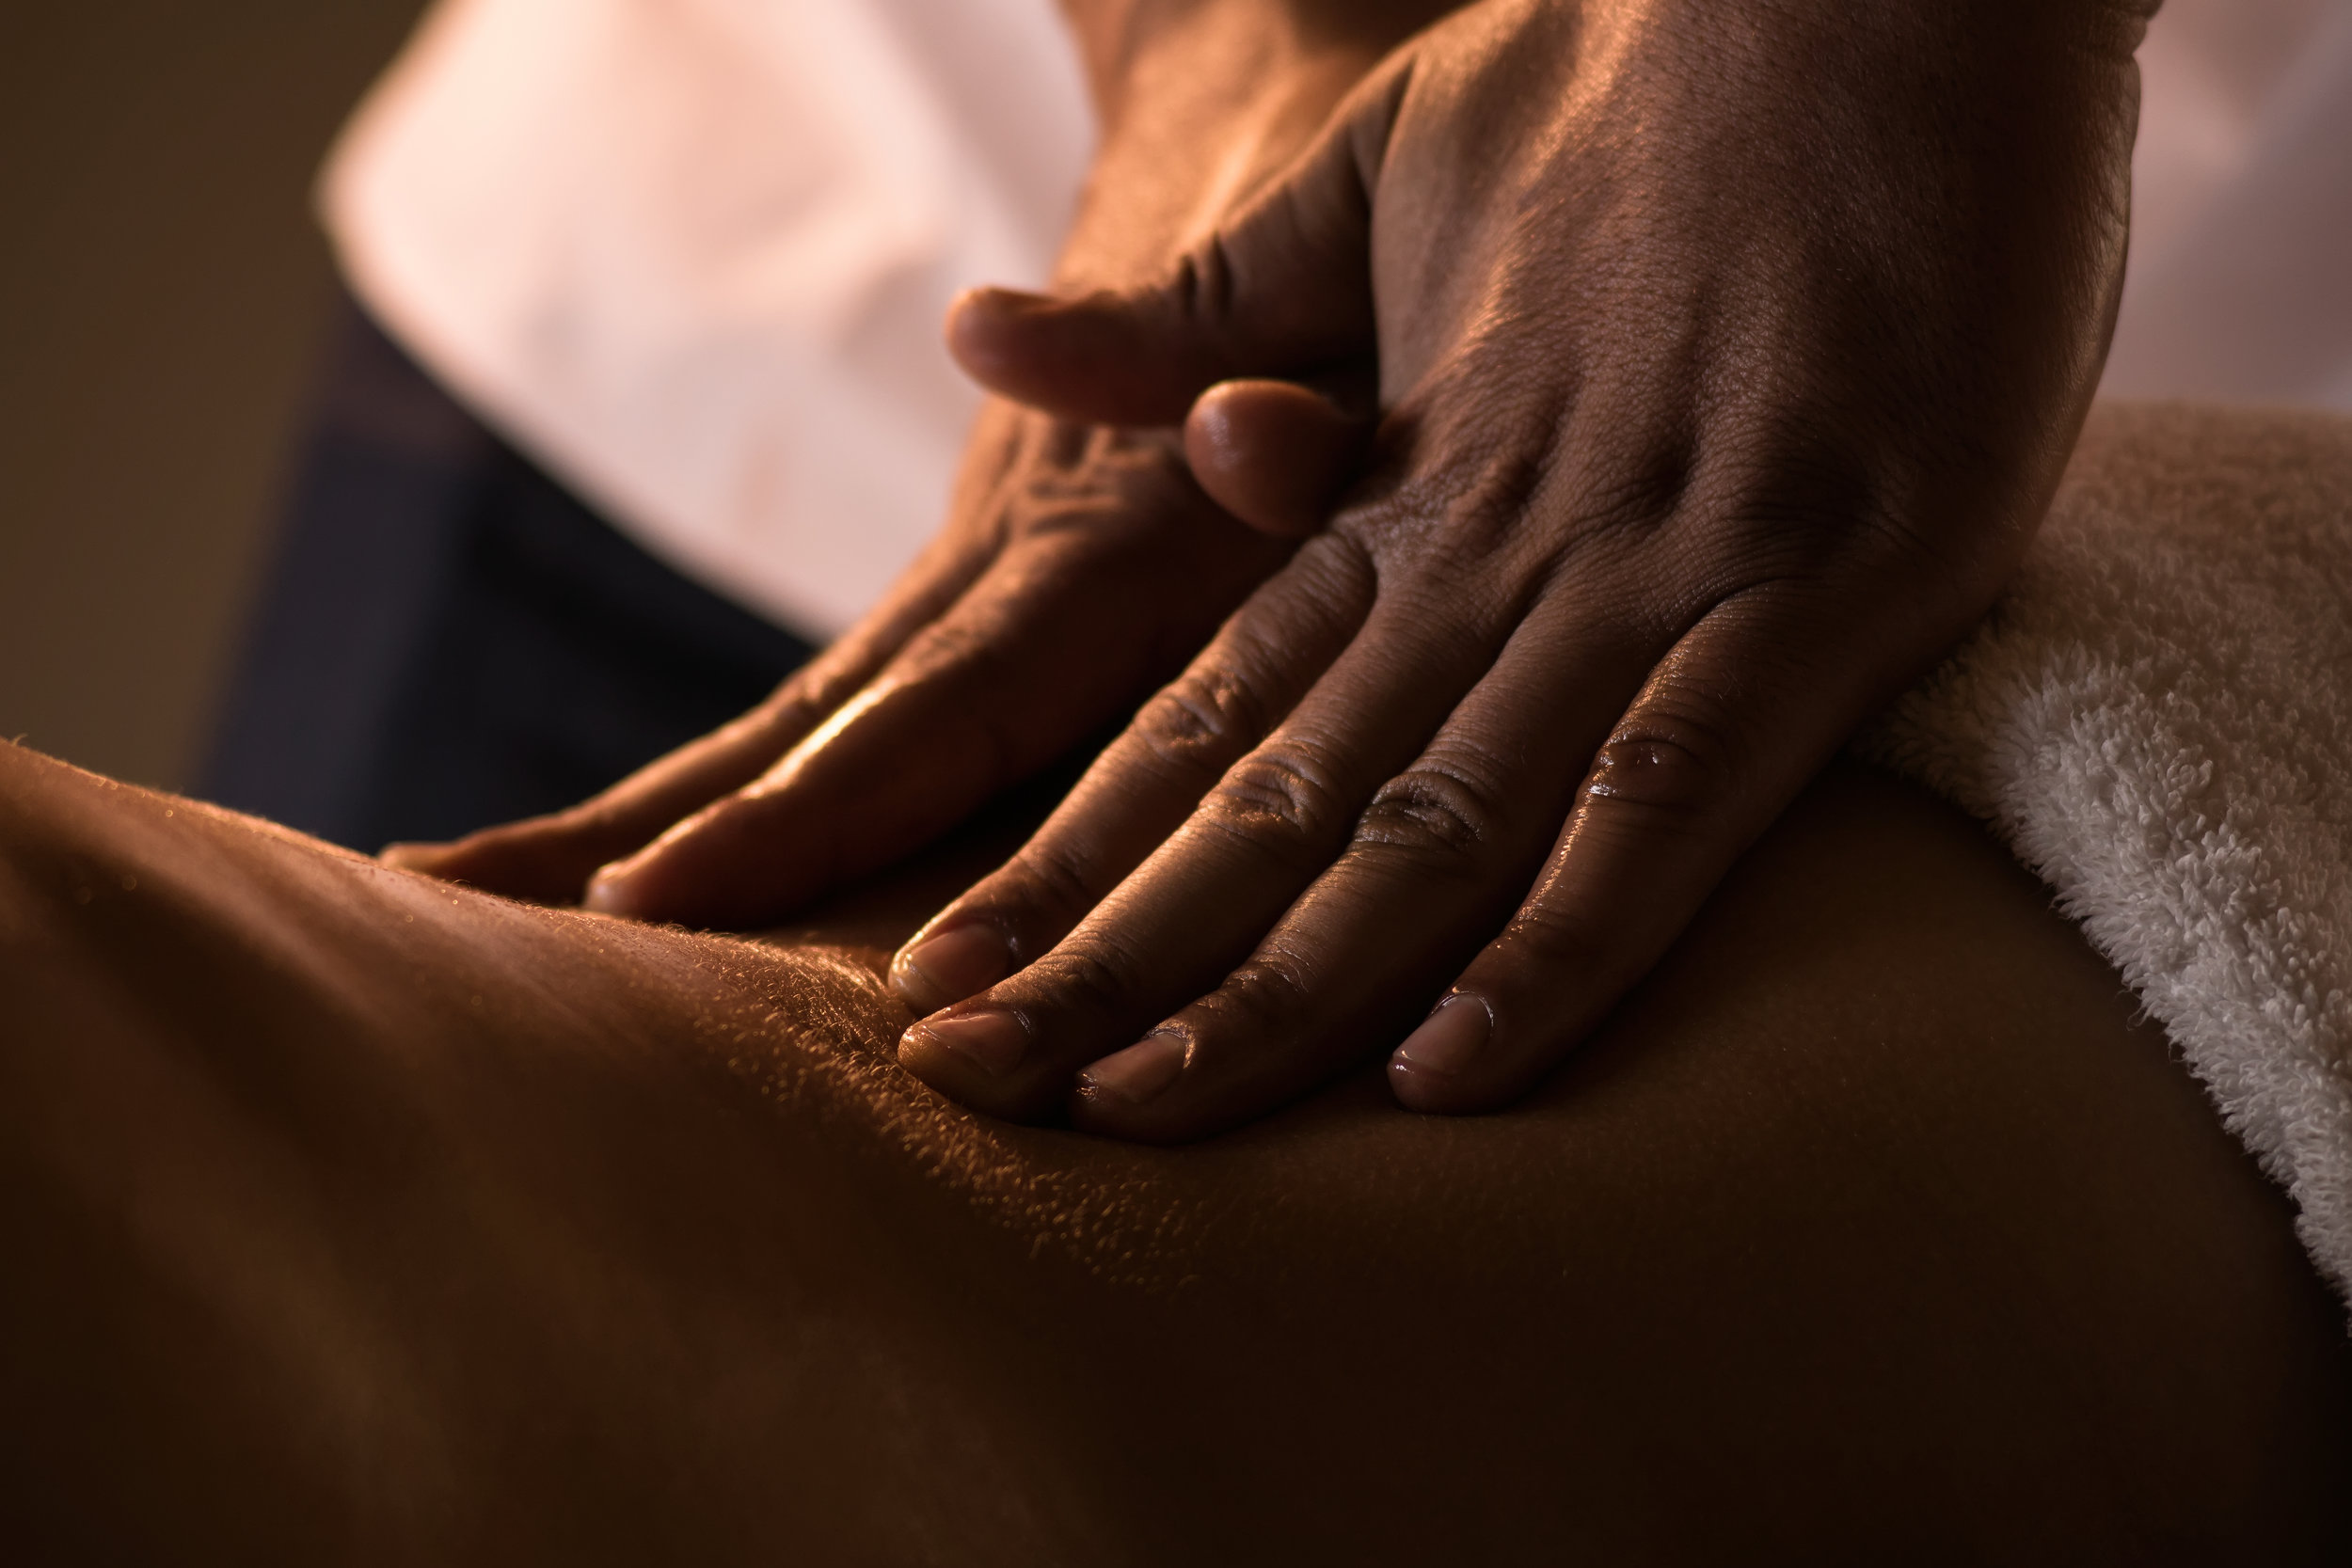 Relax Under Pressure - EXPERIENCE IT FOR YOURSELFPeople say they begin to relax the minute they walk into our office. The elegant decor, fresh flowers, tranquil setting and soothing music set the stage for a deeply relaxing and healing experience. Our licensed massage therapists have years of experience and a deep commitment to offering the highest quality massage available in our area, and we are all proponents of continuing education, staying up to date on the latest research and techniques so we can continue to offer our clients the best possible care.